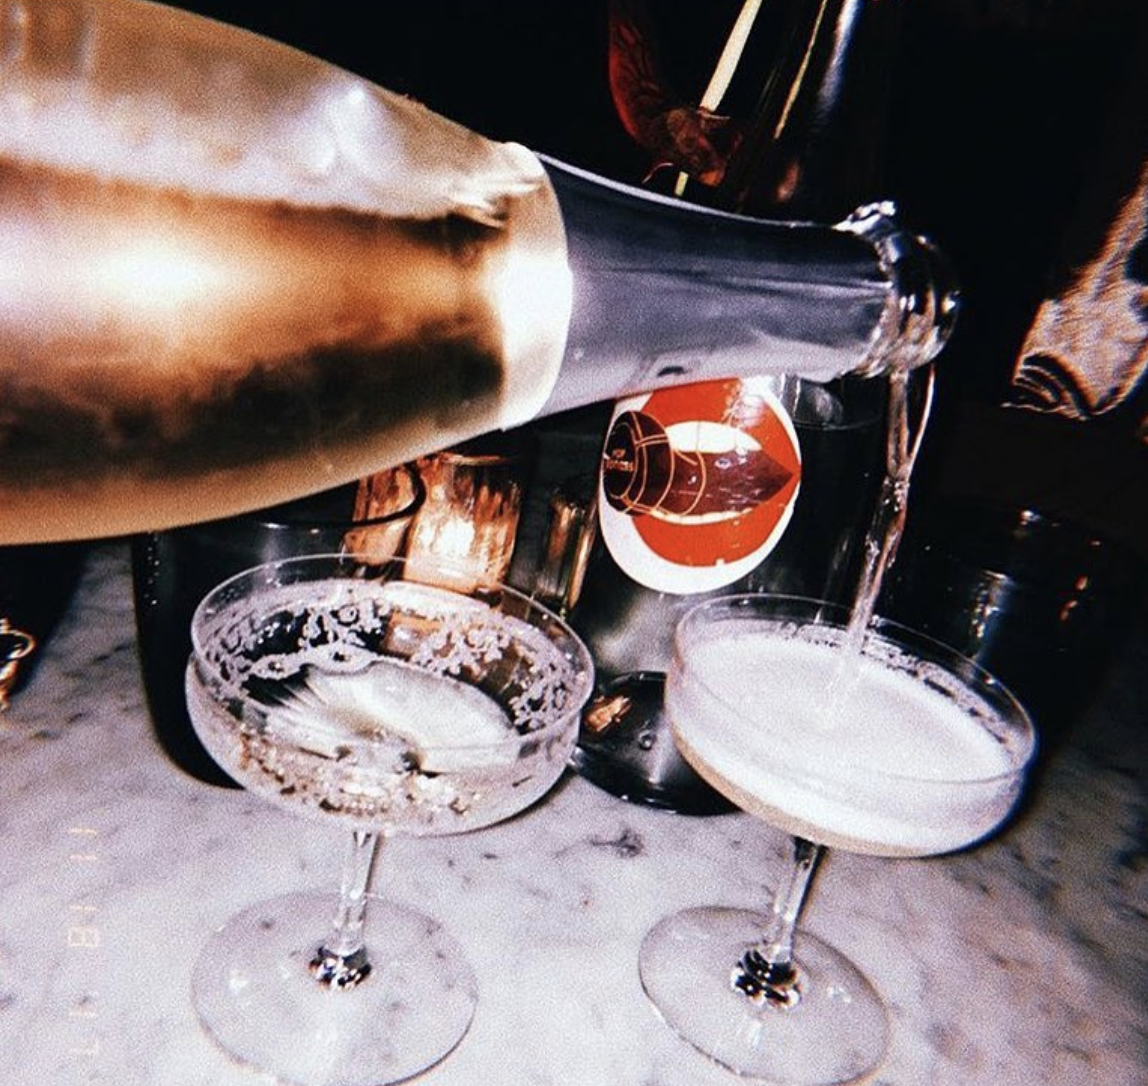 AIR'S CHAMPAGNE PARLOR - NEW YORK